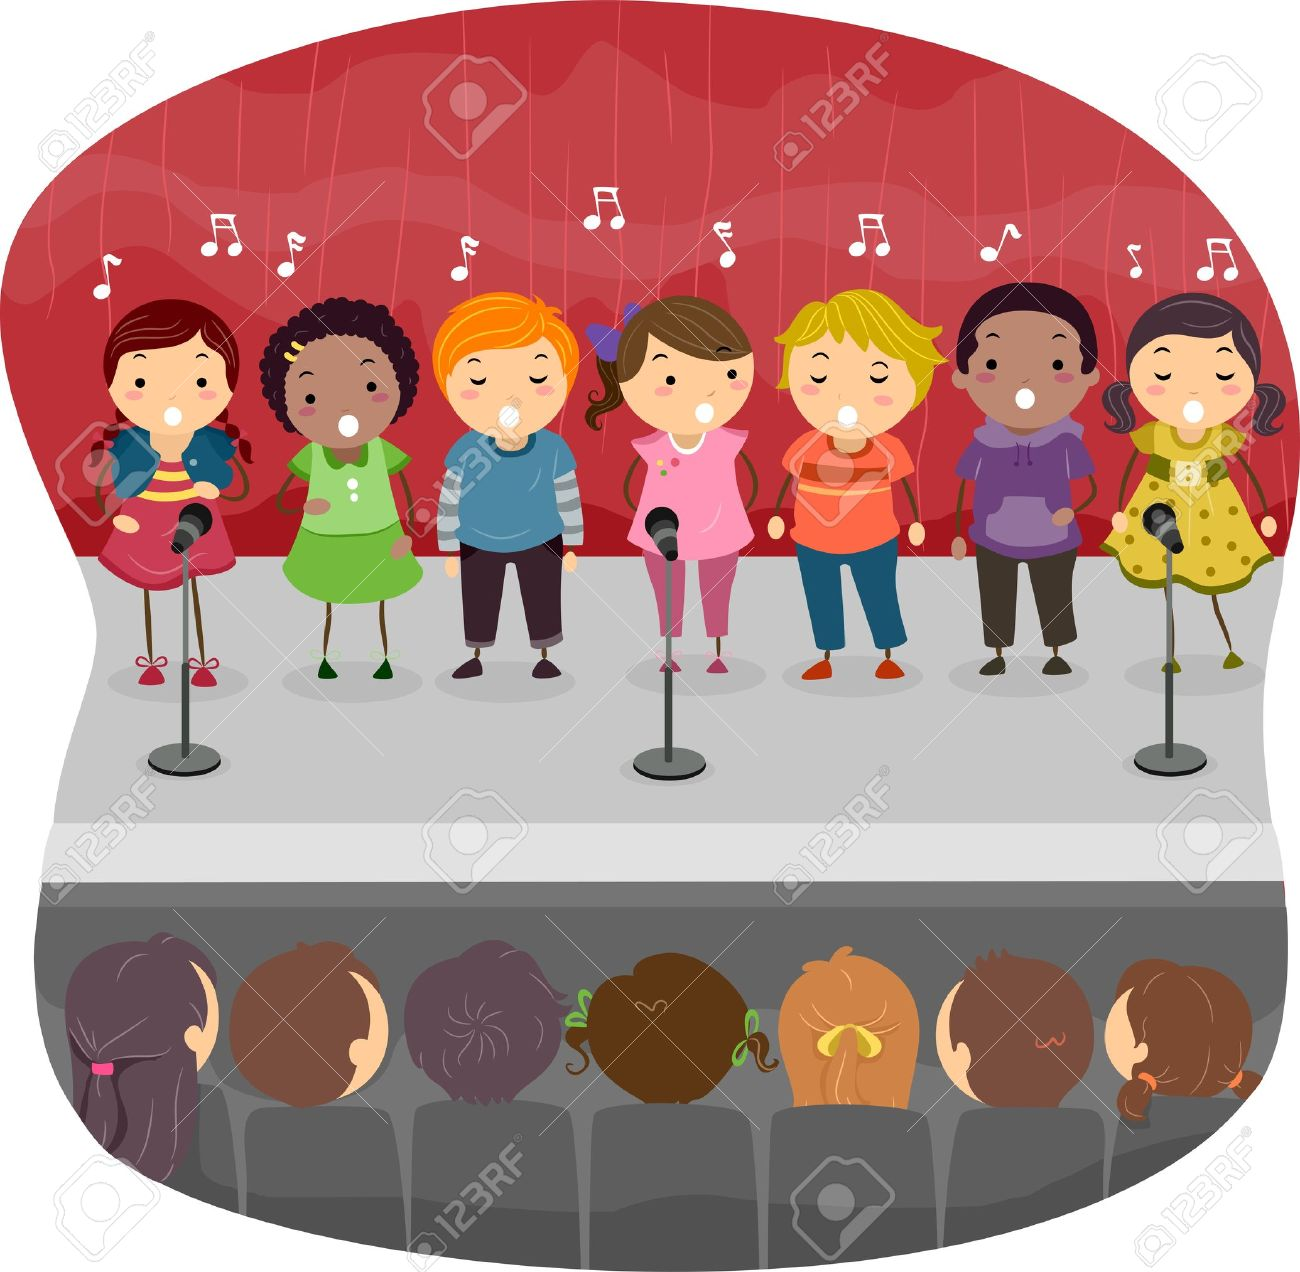 Illustration Of Kids Singing On The Stage Stock Photo, Picture And ...